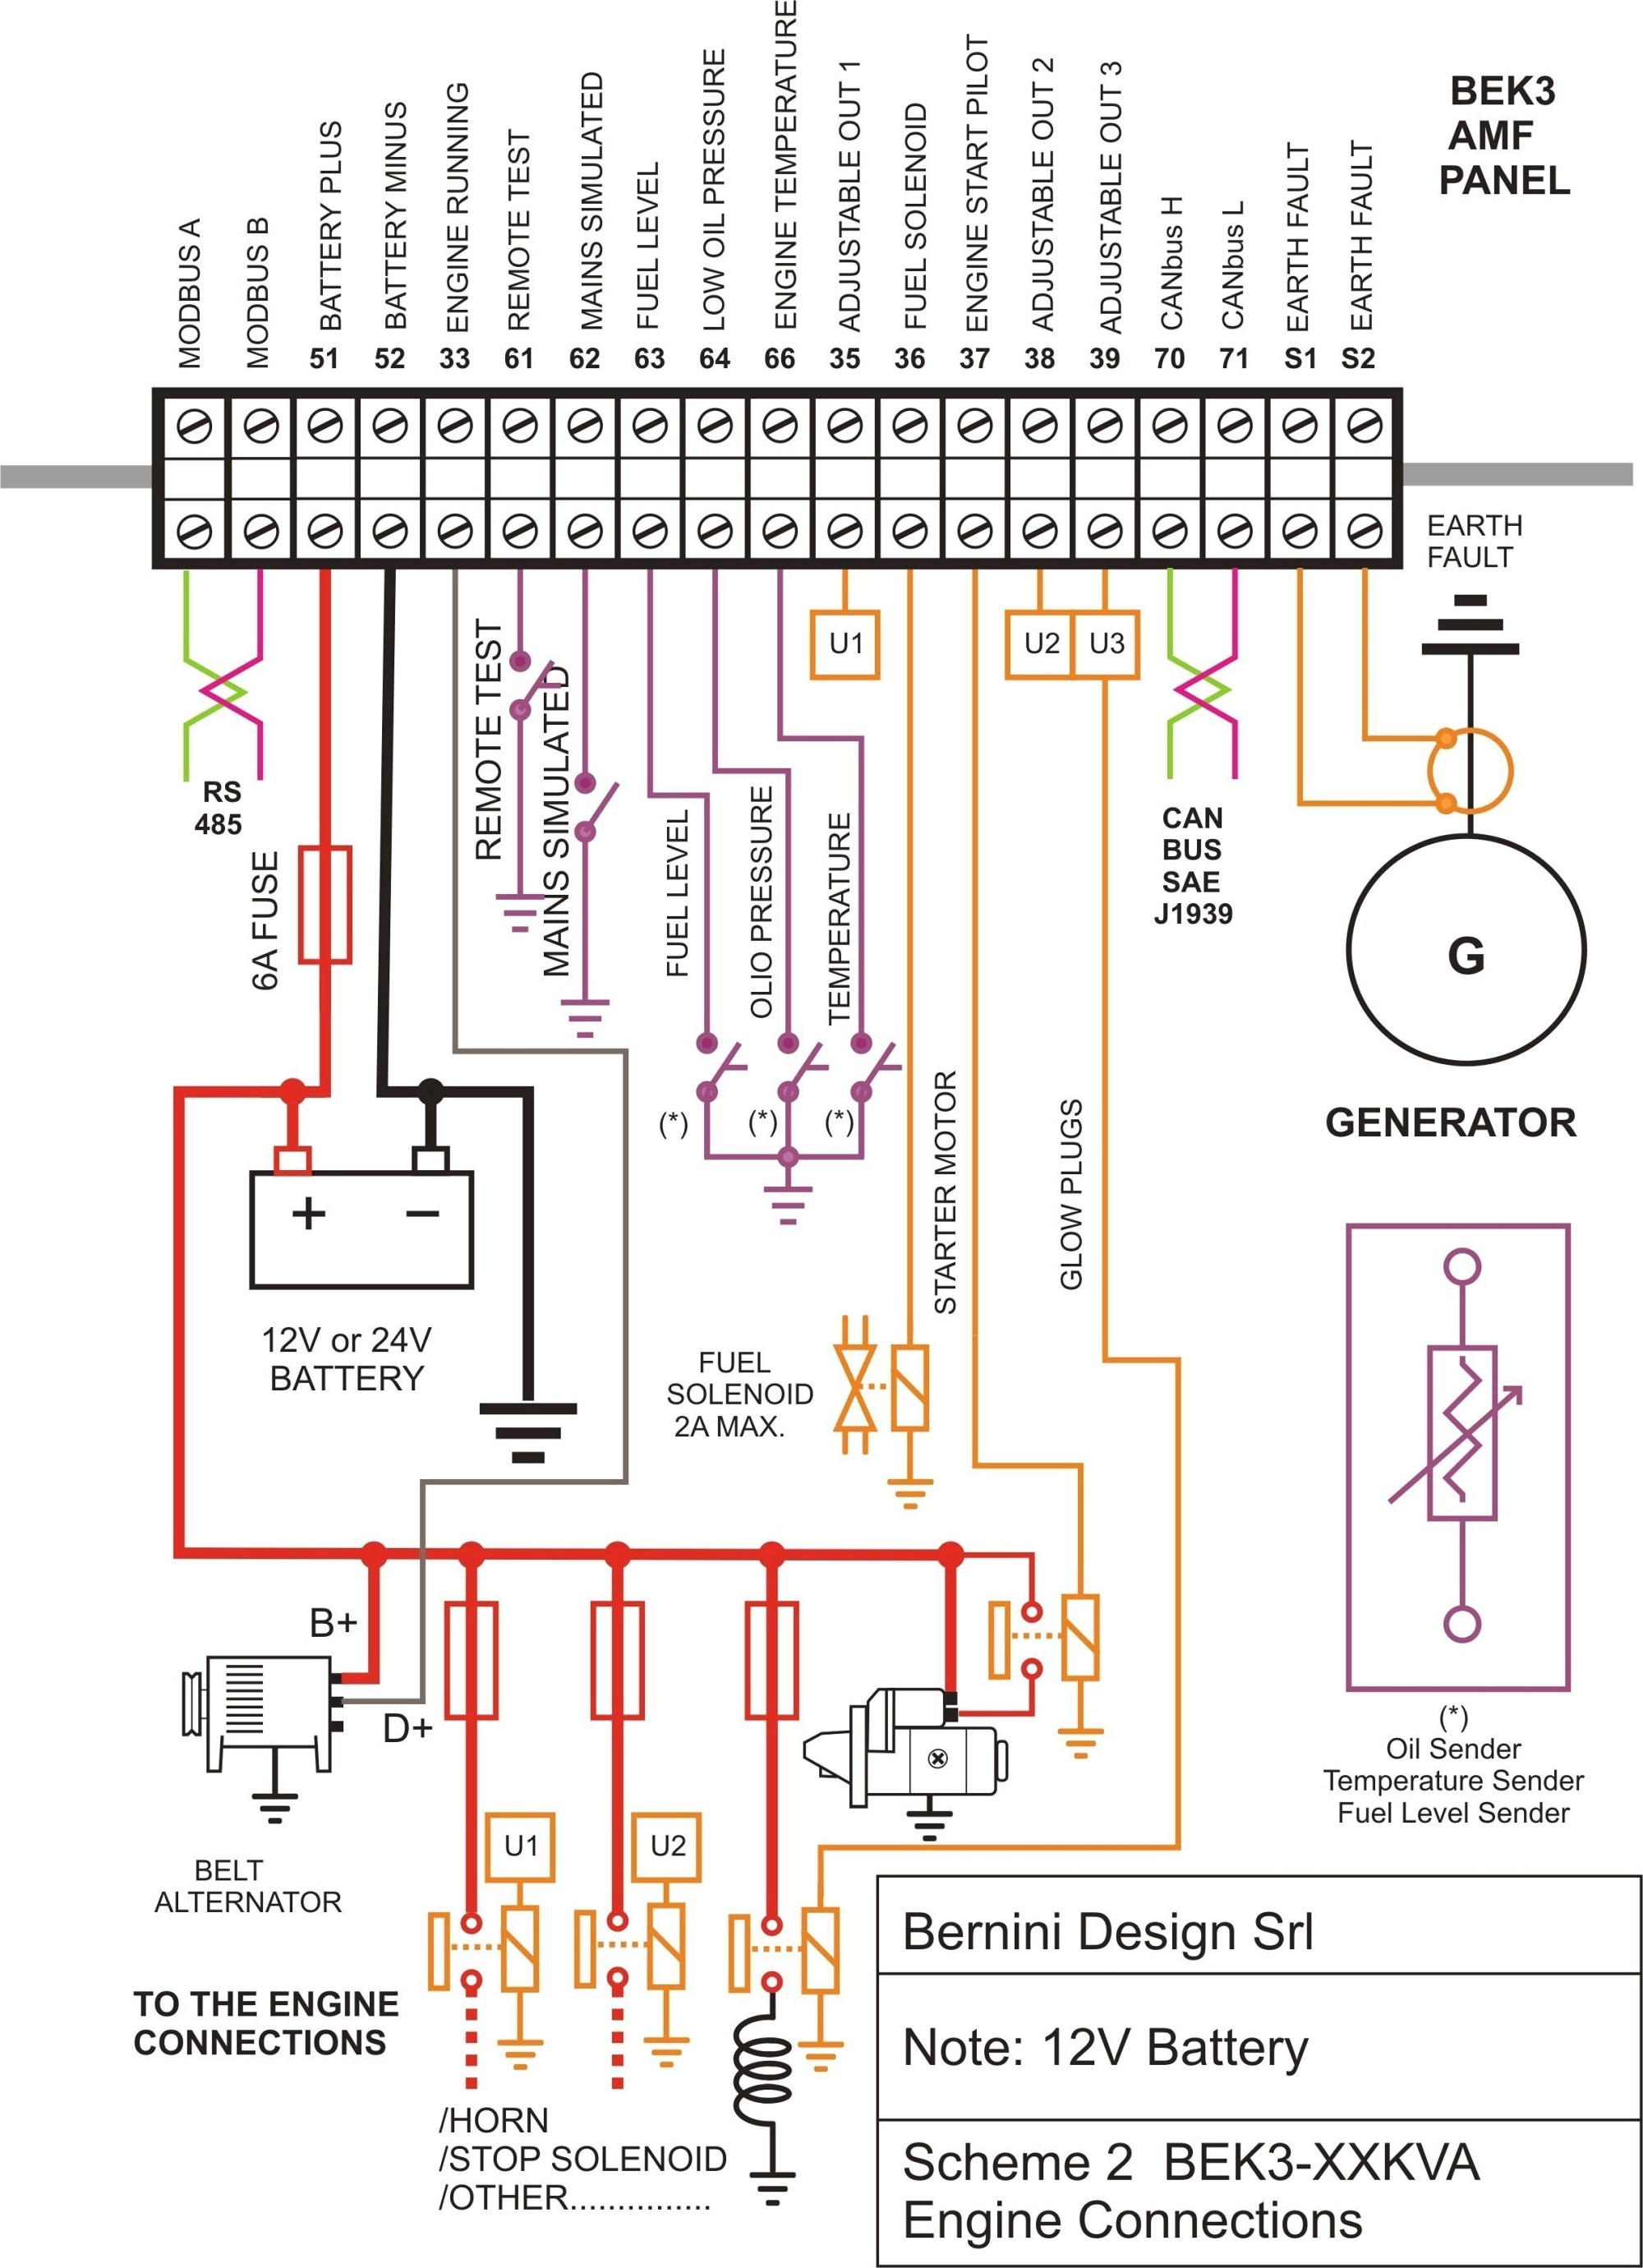 hight resolution of wrg 9159 1 phase motor rm 990 wiring diagram 1 phase motor rm 990 wiring diagram